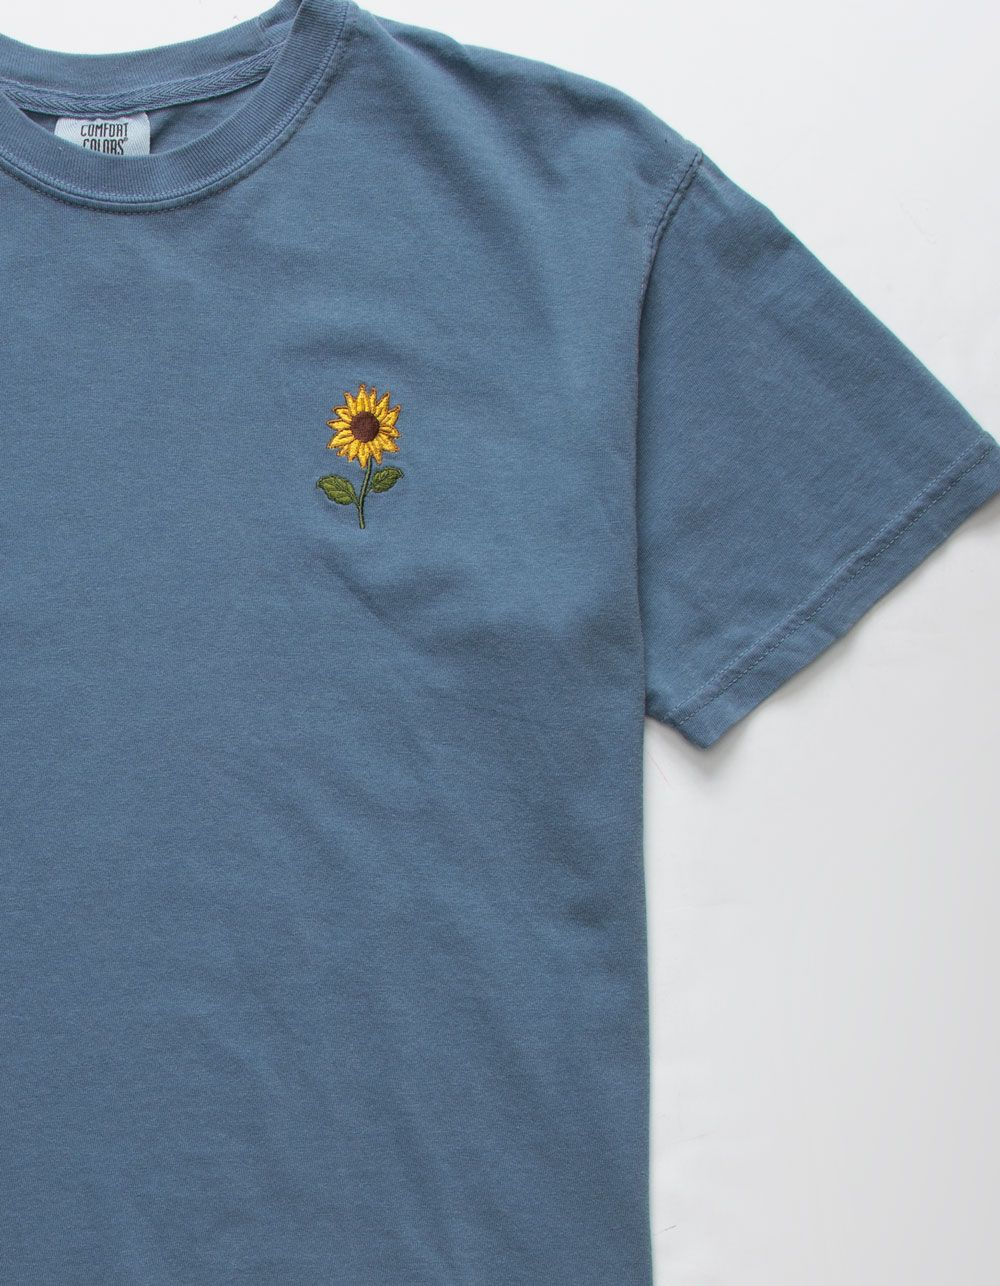 Riot Society Sunflower Embroidered tee. Embroidered sunflower at the left chest. Short sleeve. Crew neck. 100% cotton. Machine wash. Imported.